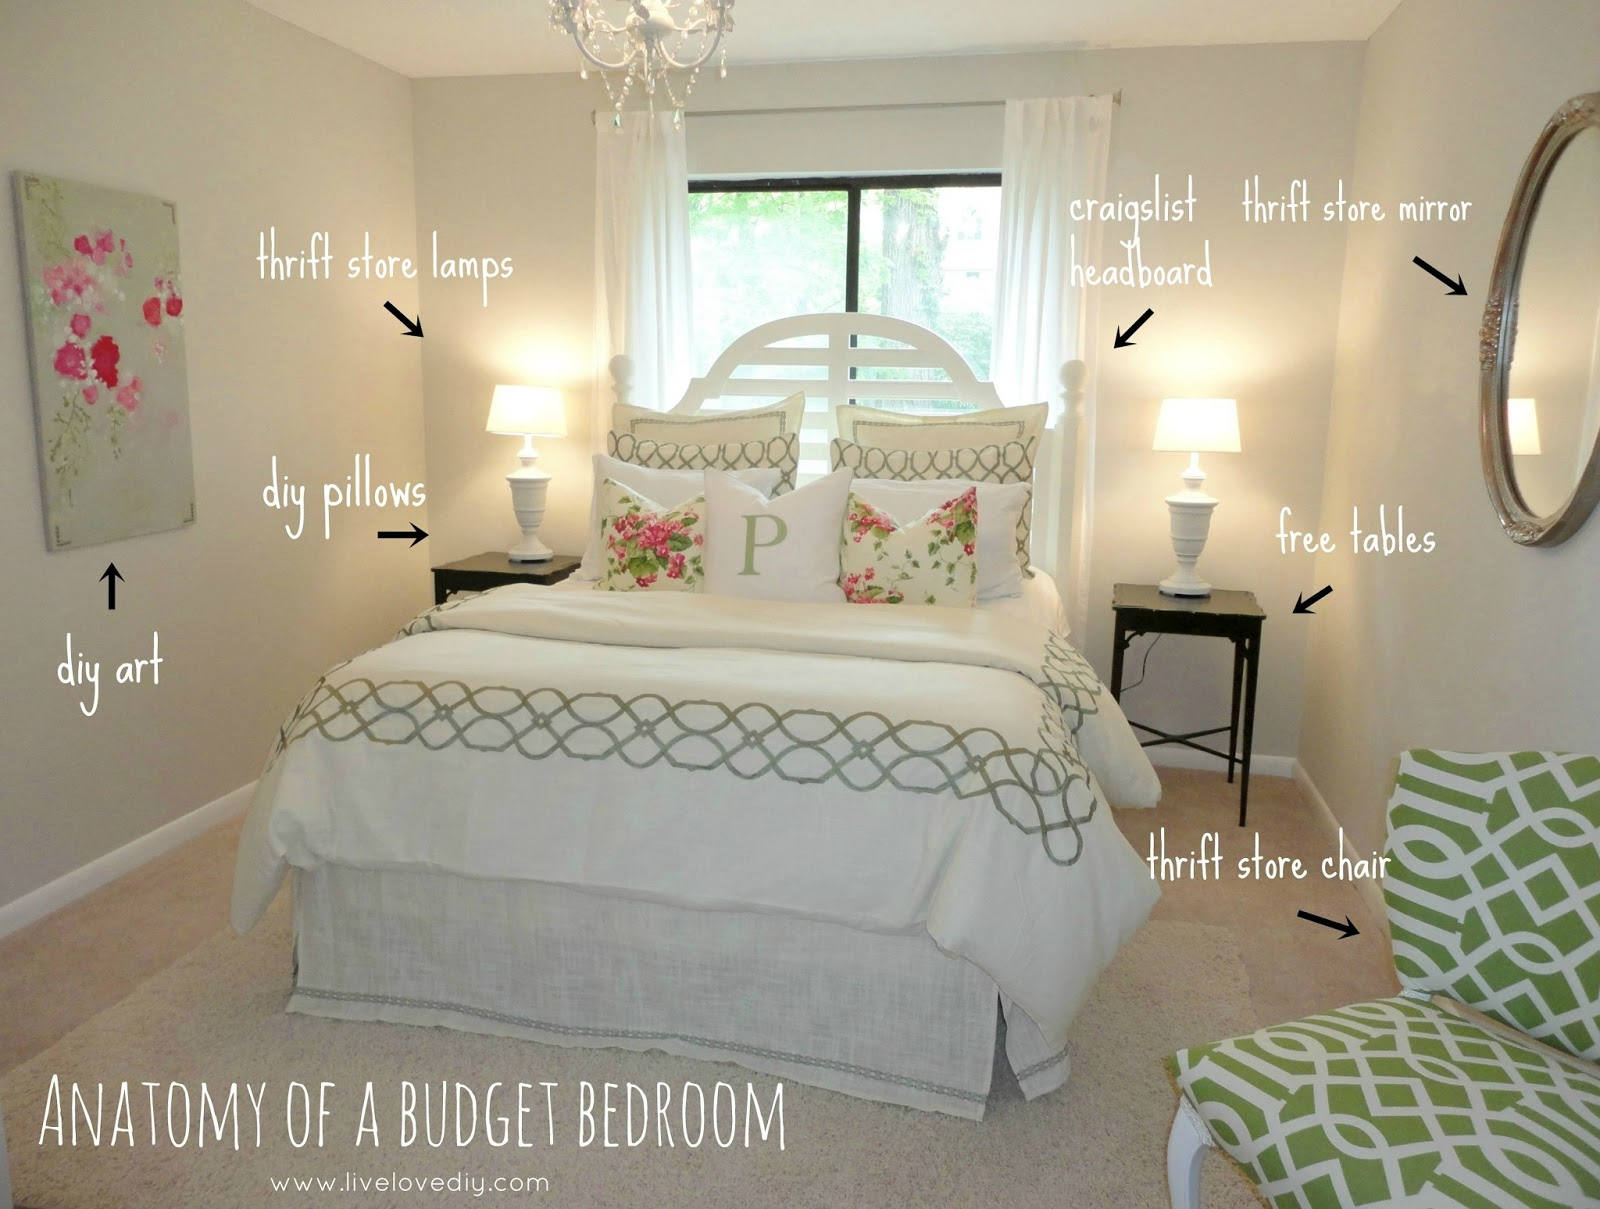 Livelovediy Decorating Bedrooms With Secondhand Finds The Guest Bedroom Reveal: how to decorate your bedroom cheap